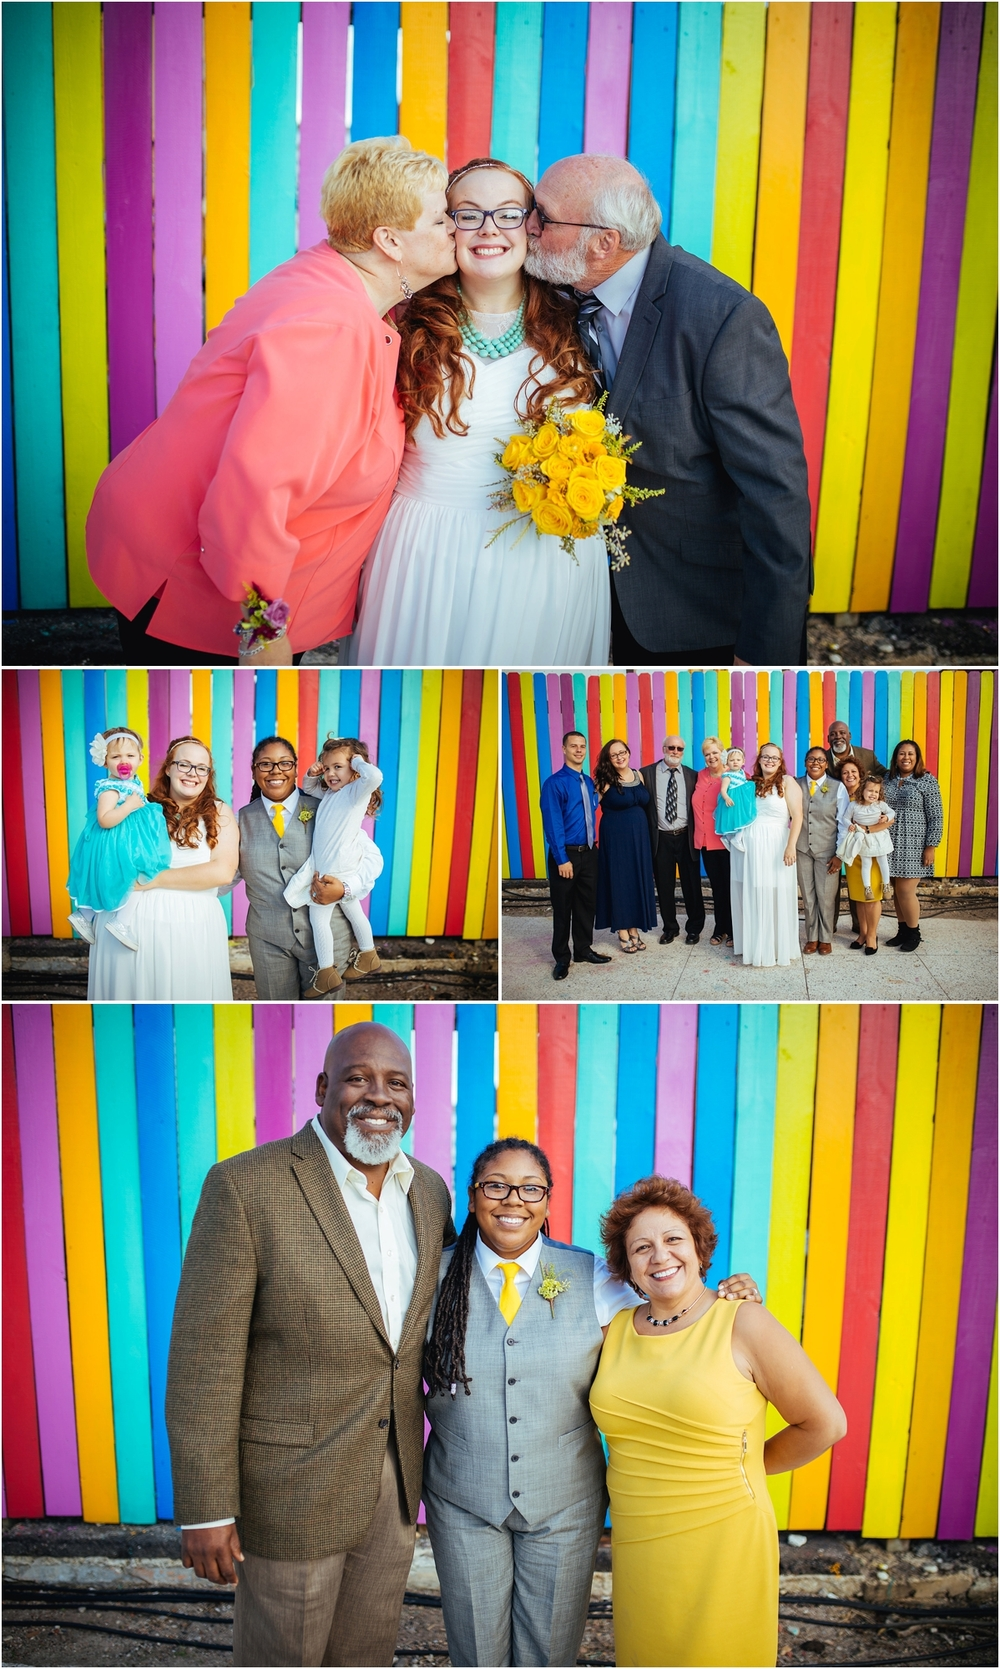 A Lovely Photo Wedding Photography brides with their families